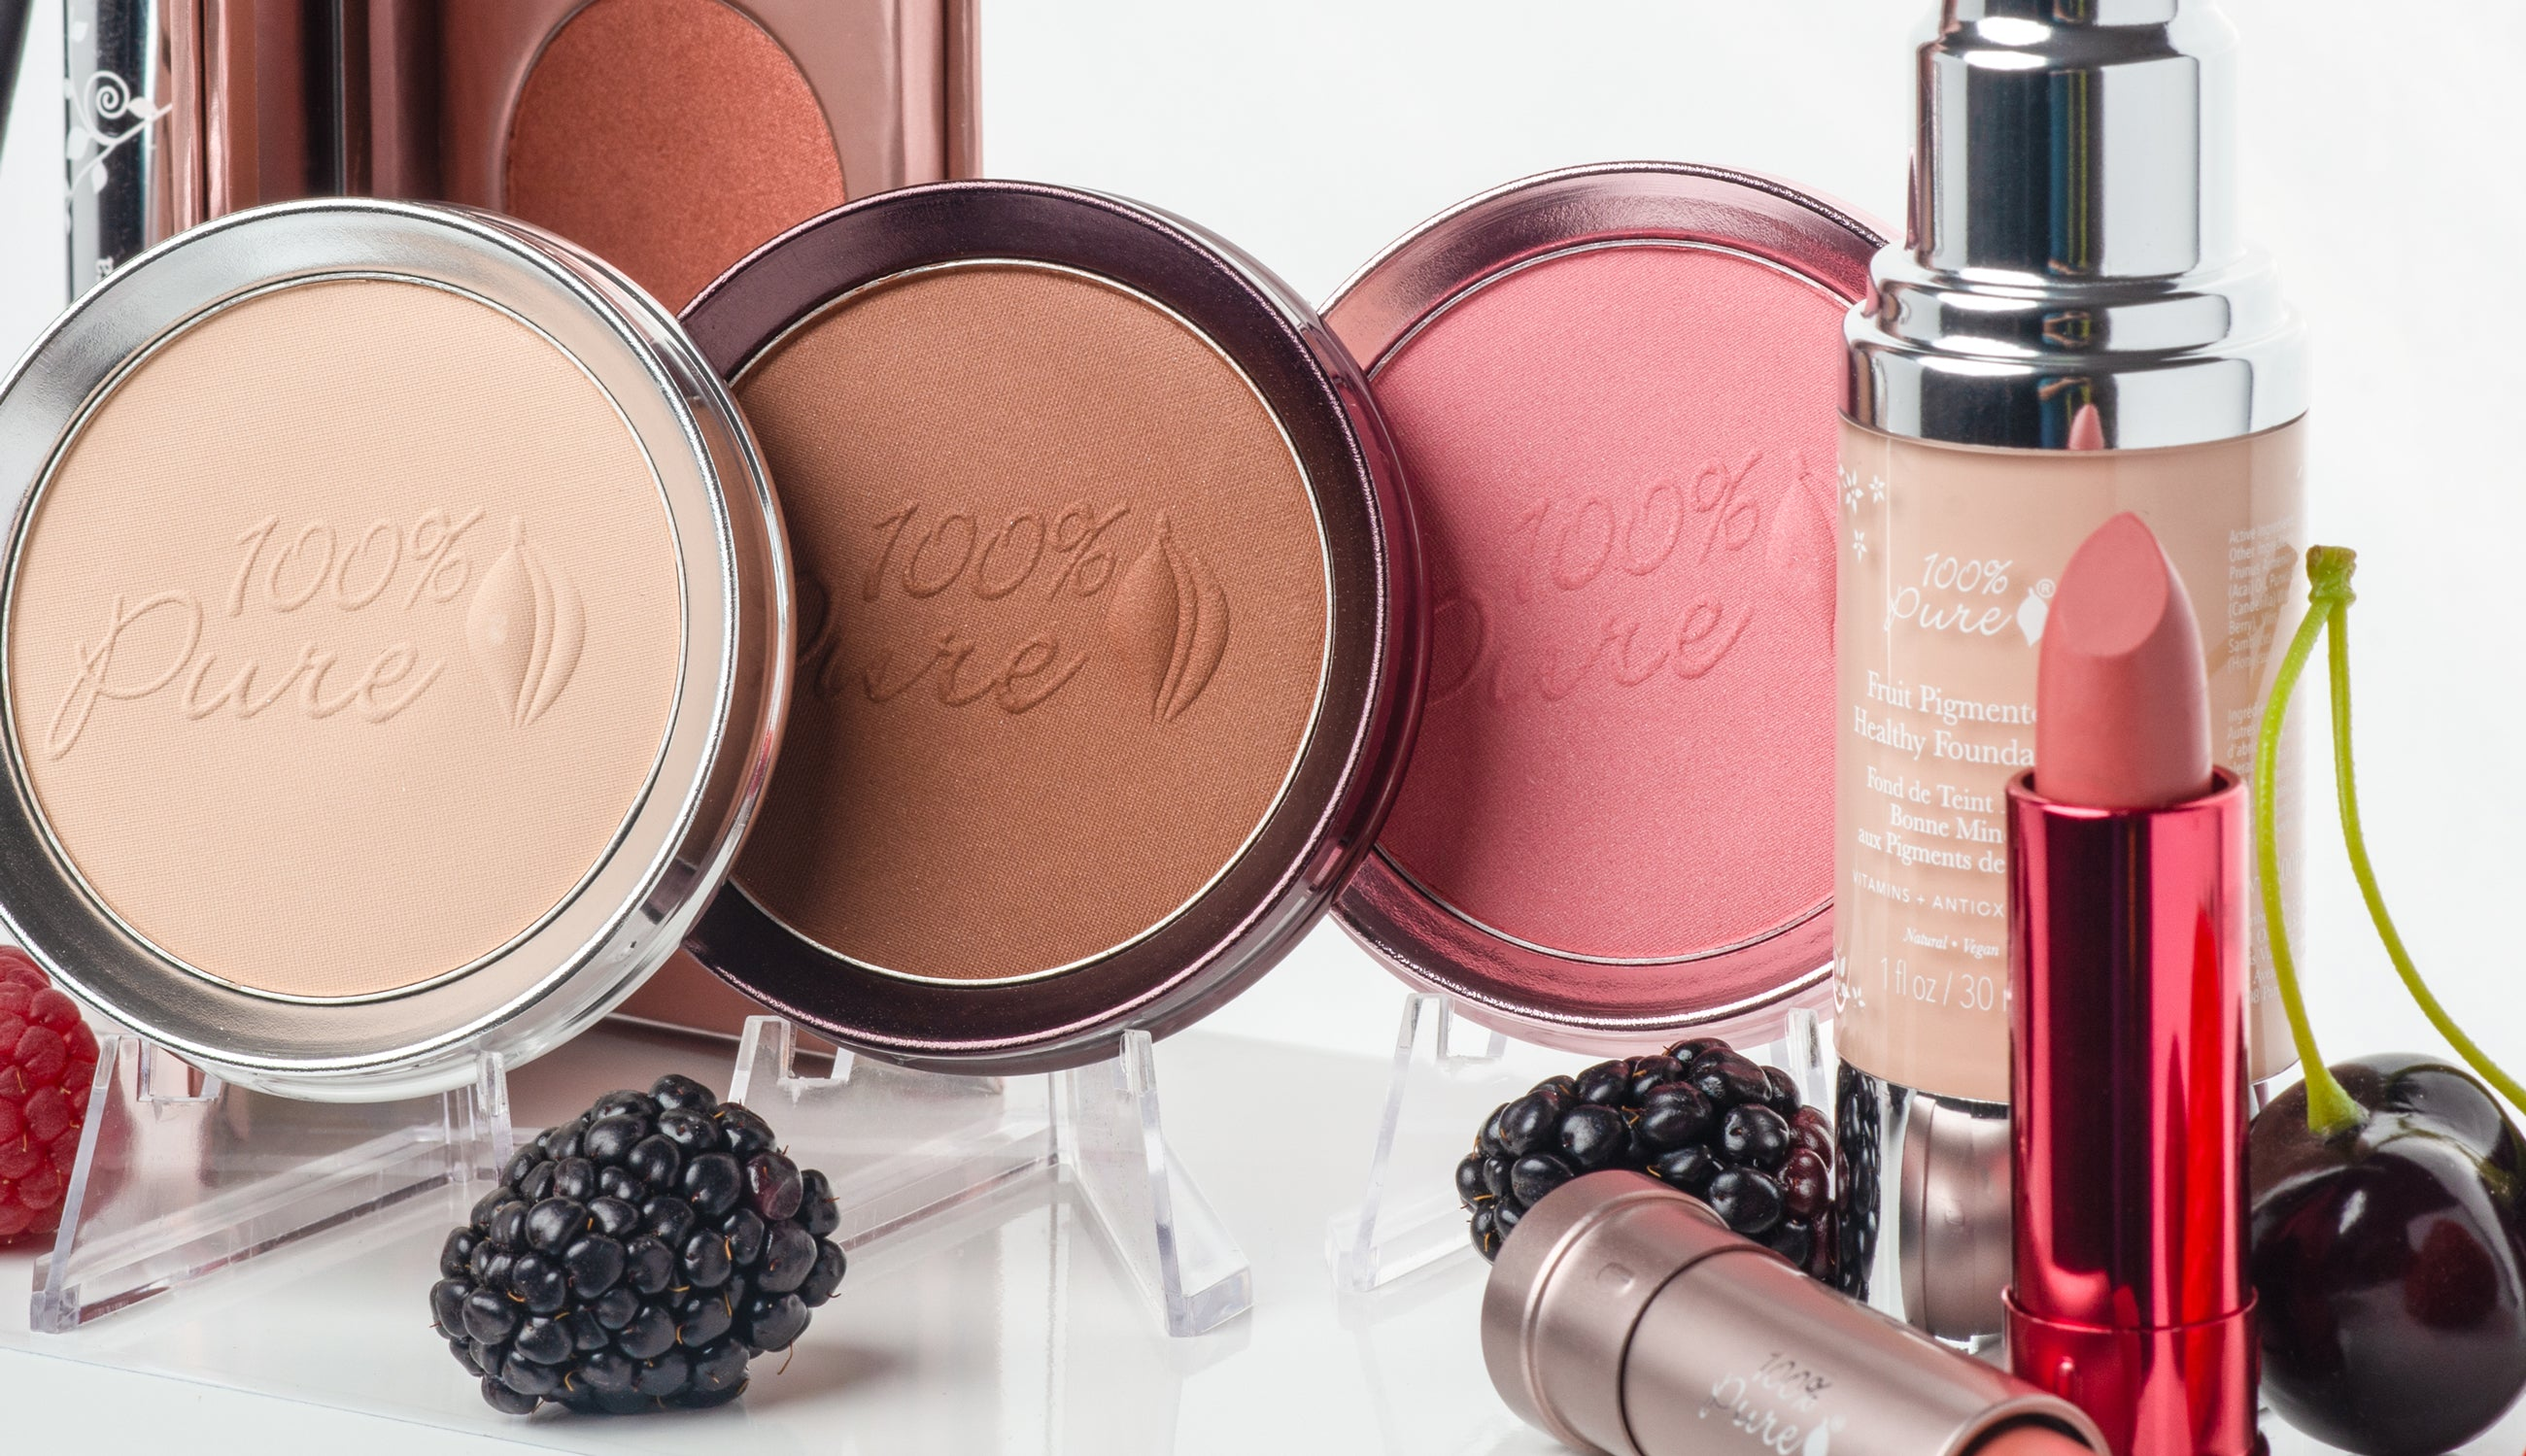 100 Pure Legacy Story Fruit Pigmented Natural Makeup 100 Pure